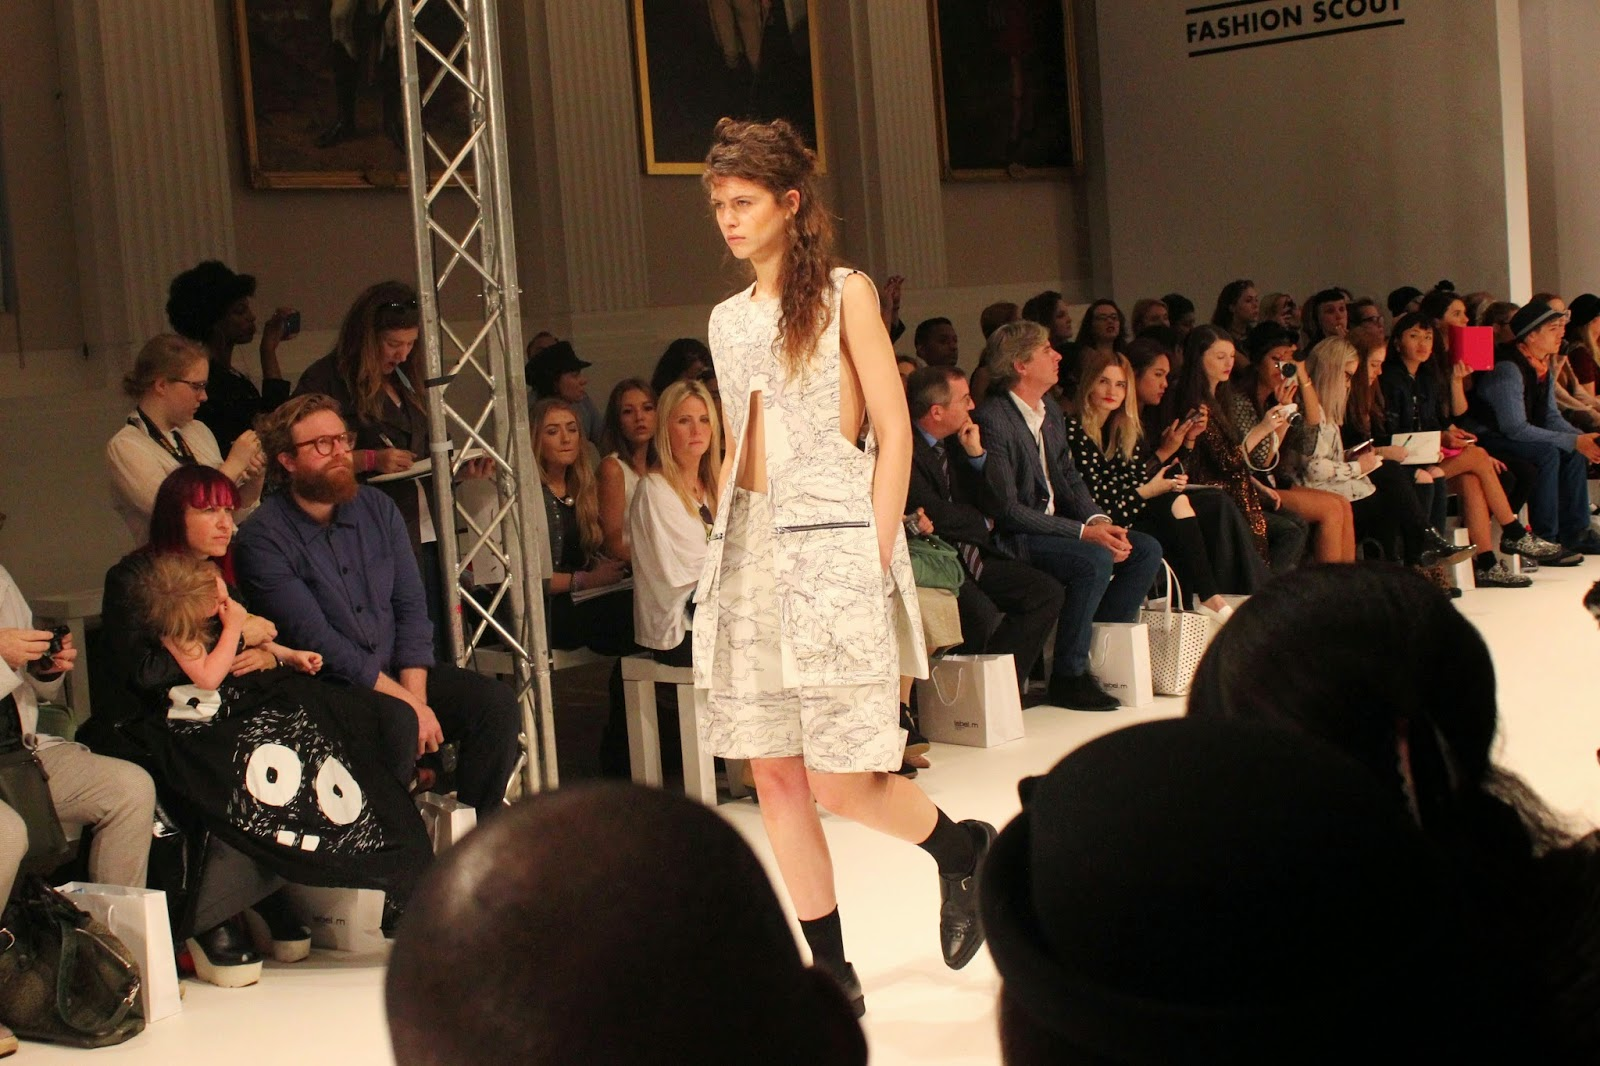 london-fashion-week-2014-lfw-spring-summer-2015-blogger-fashion-Dioralop-catwalk-models-freemasons hall-fashion-scout-top-shorts-shoes